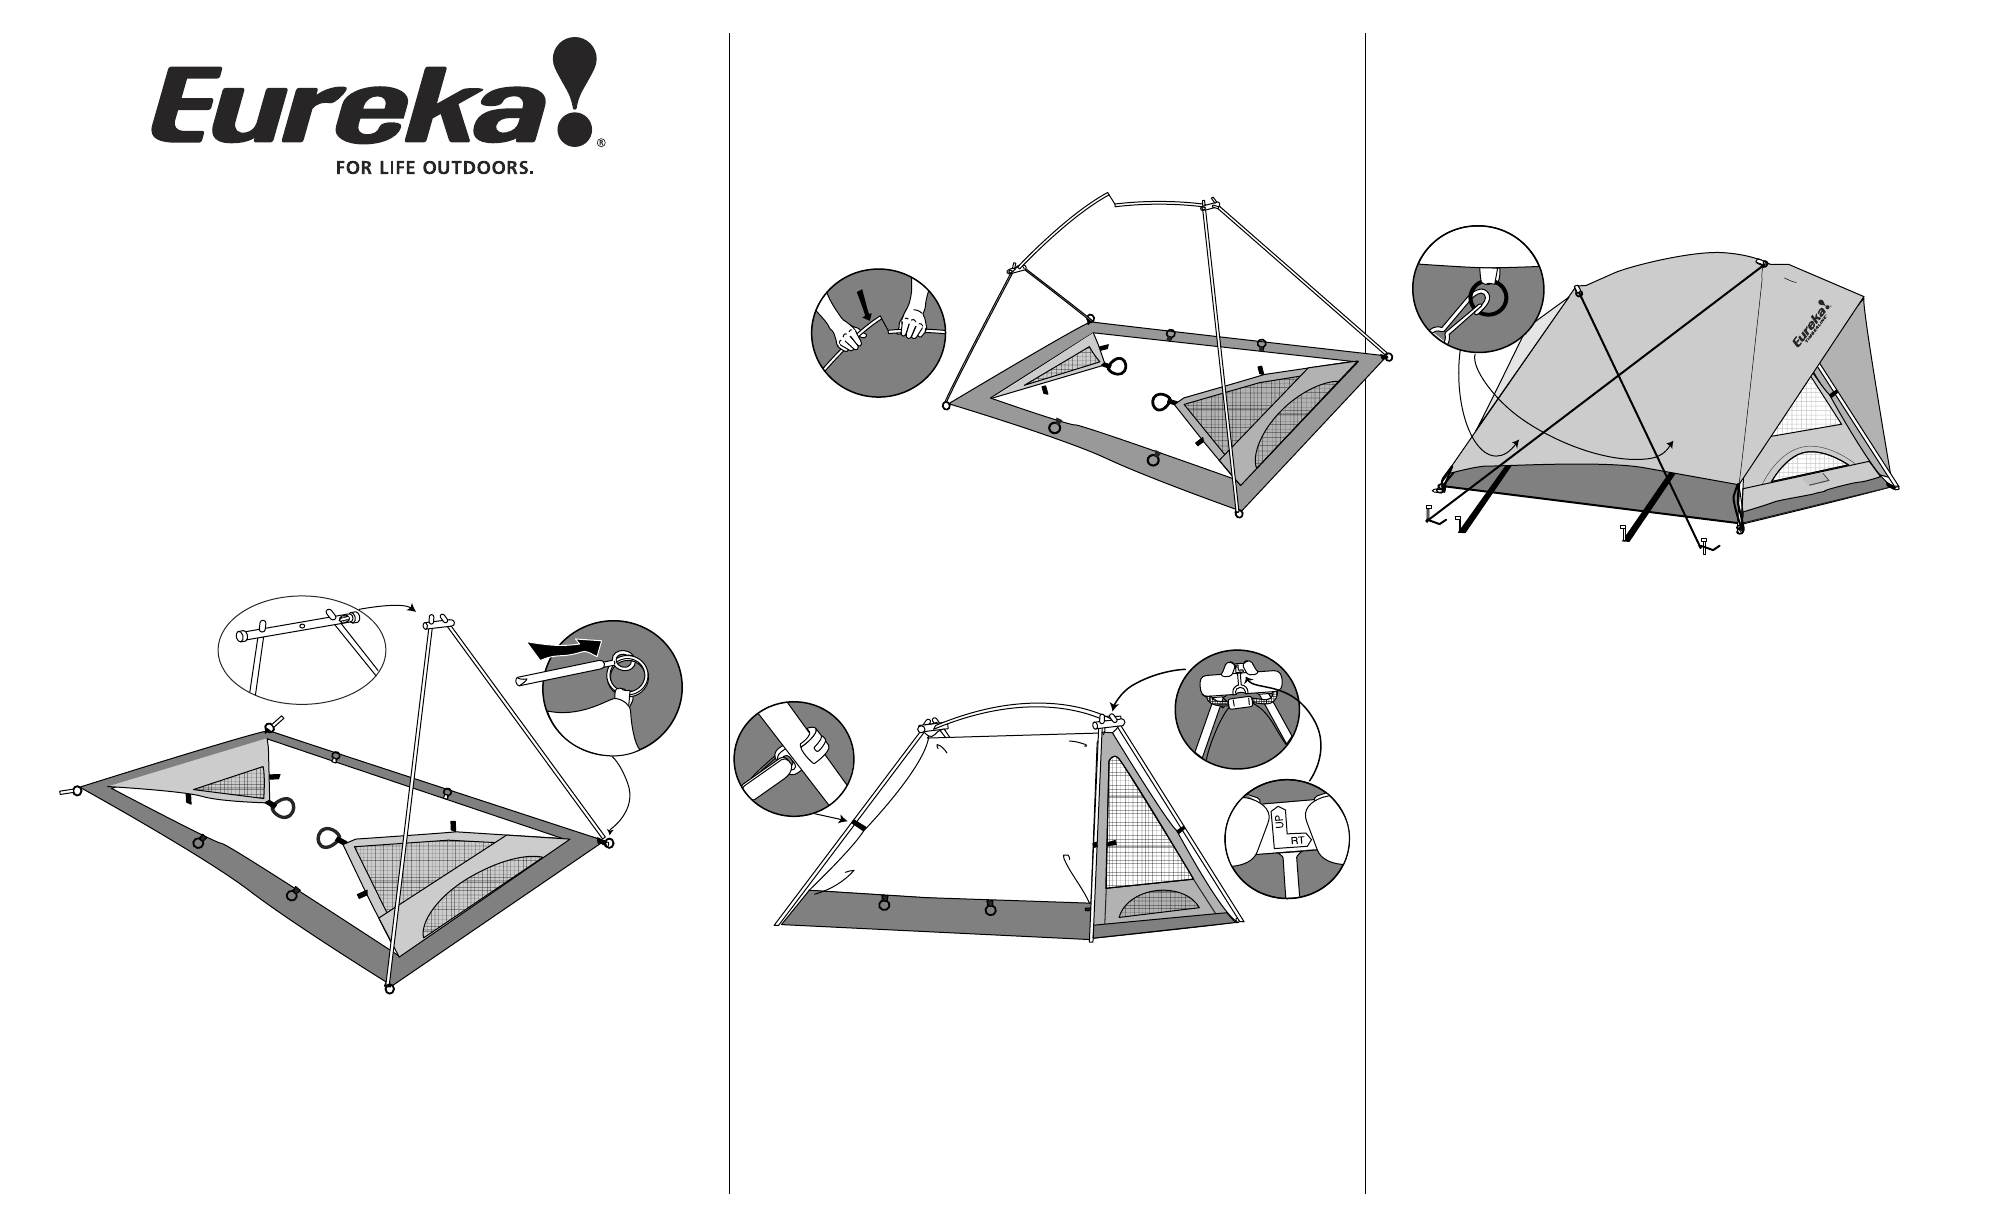 eureka tents tent timberline outfitter user guide manualsonline com rh fitness manualsonline com eureka vacuum user manual eureka atom user manual